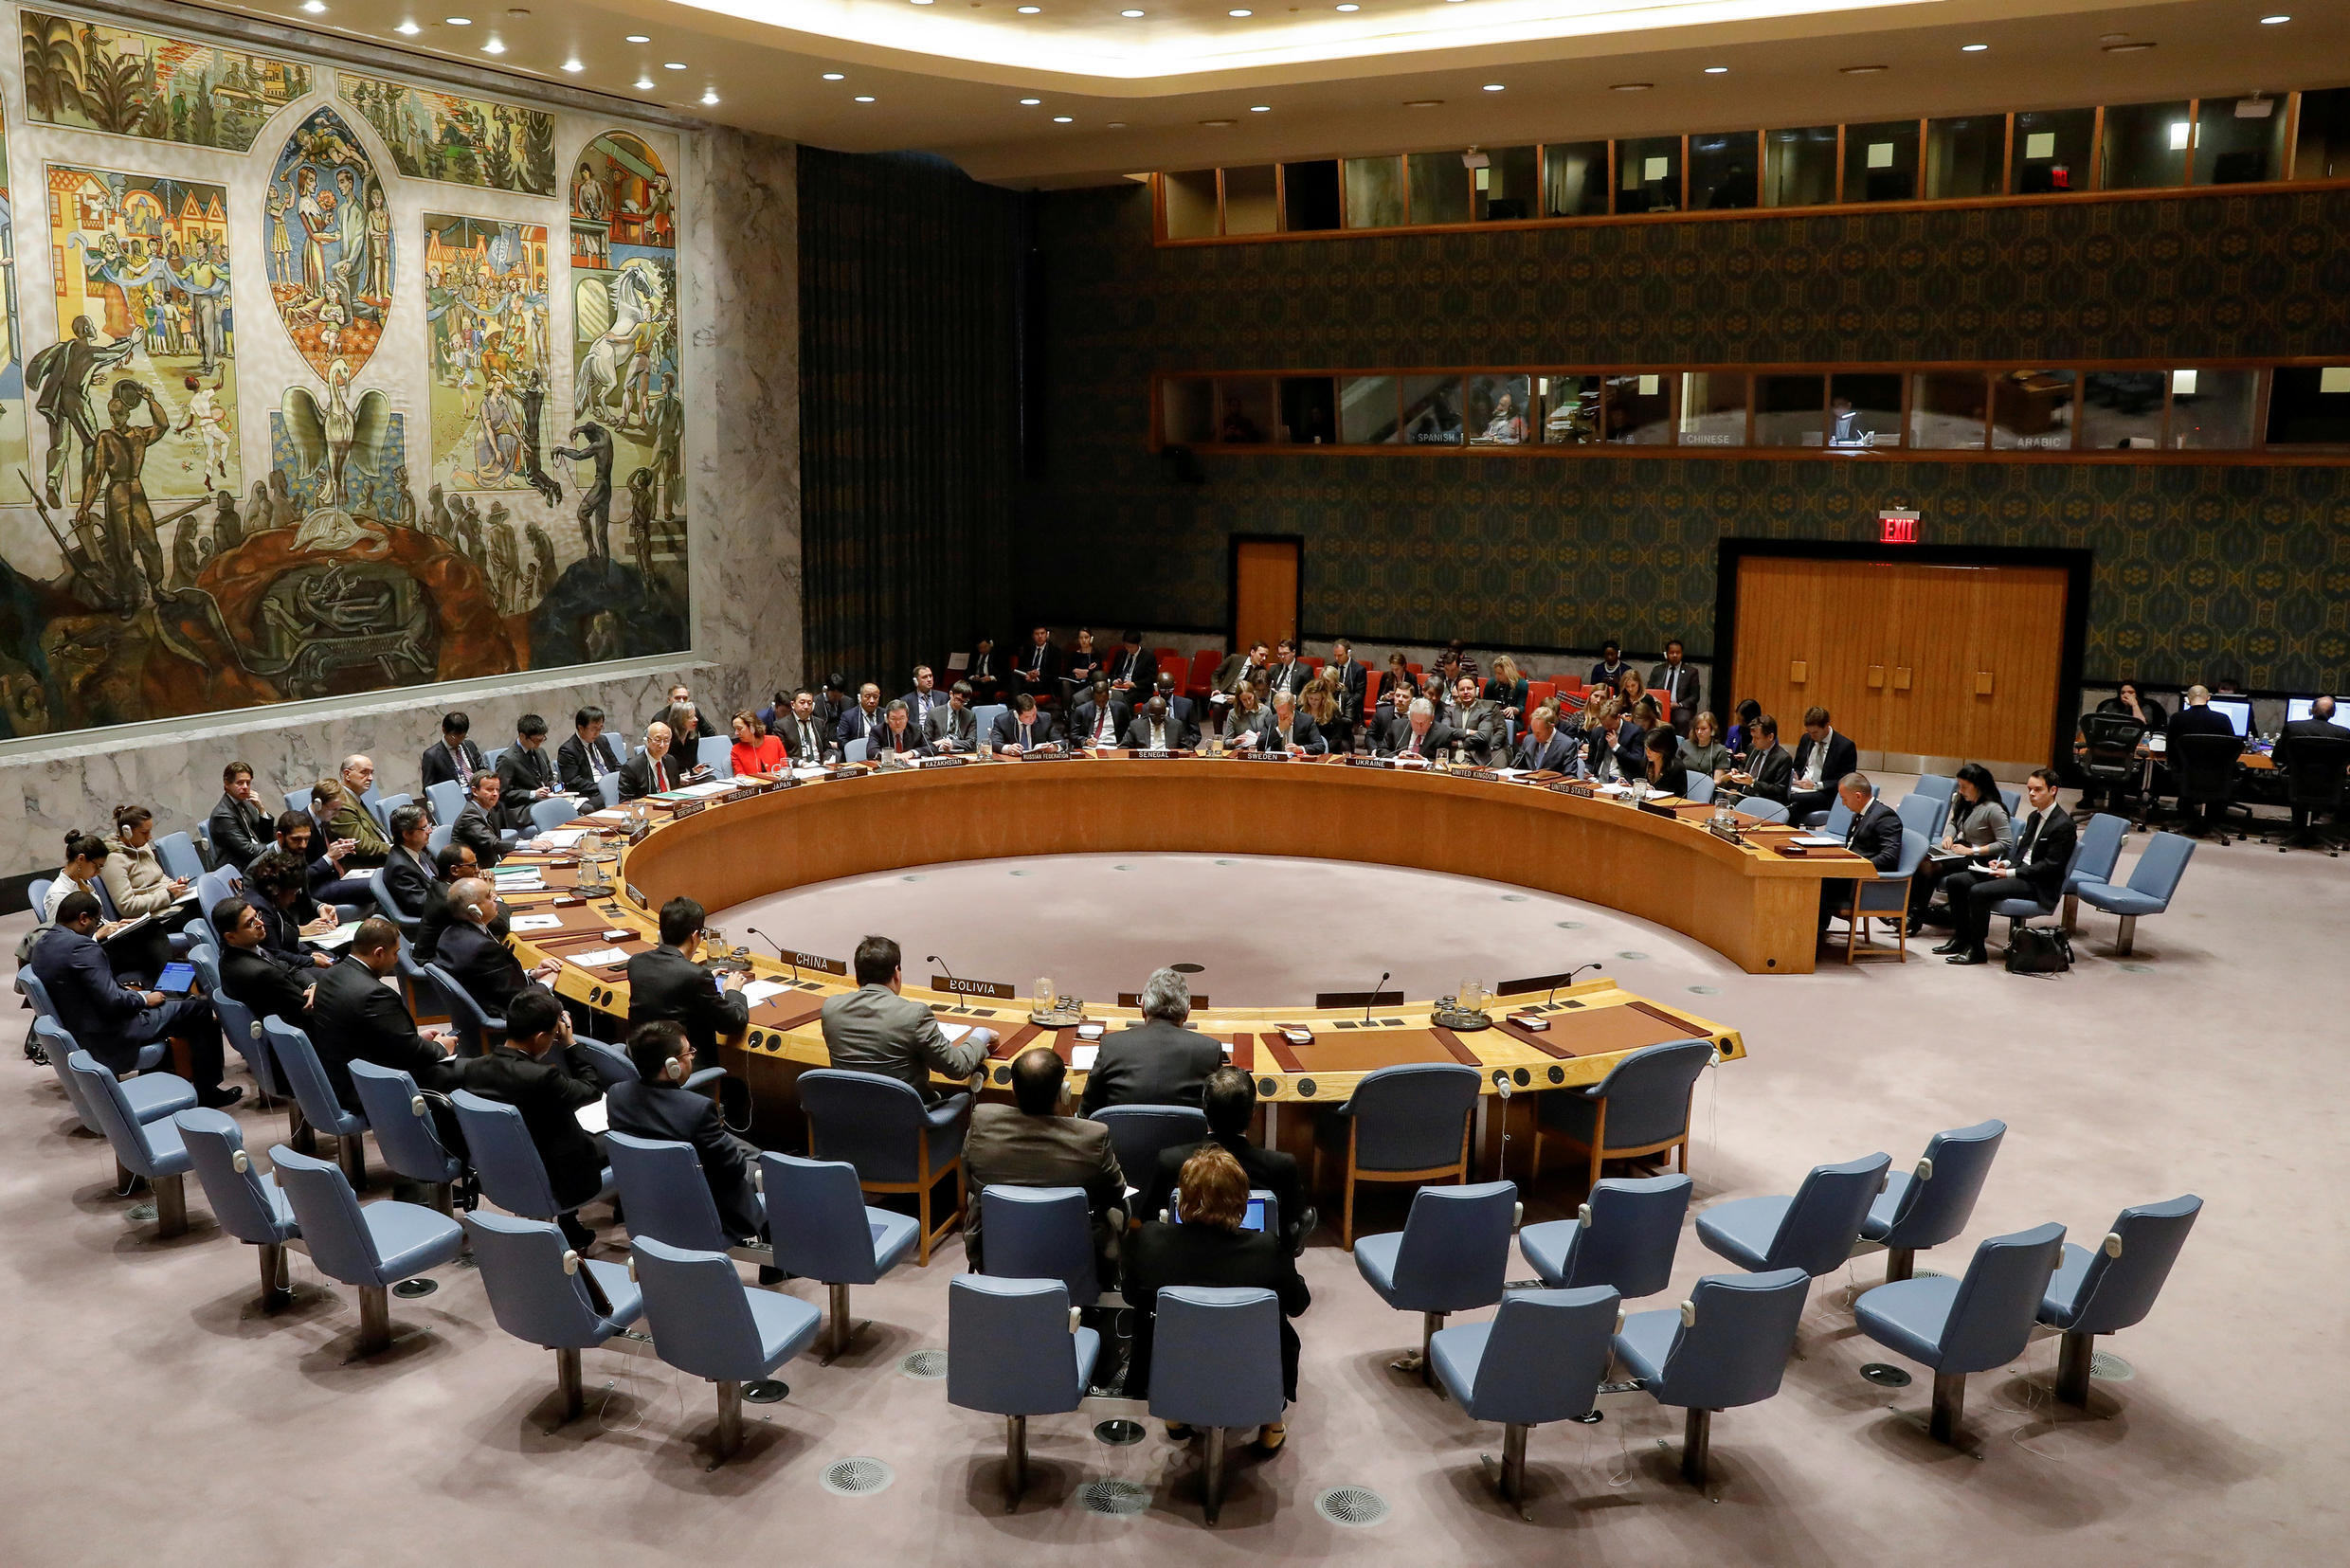 The United Nations Security Council meets on the situation in the Middle East, including Palestine, at U.N. Headquarters in New York City, New York, U.S., December 18, 2017.